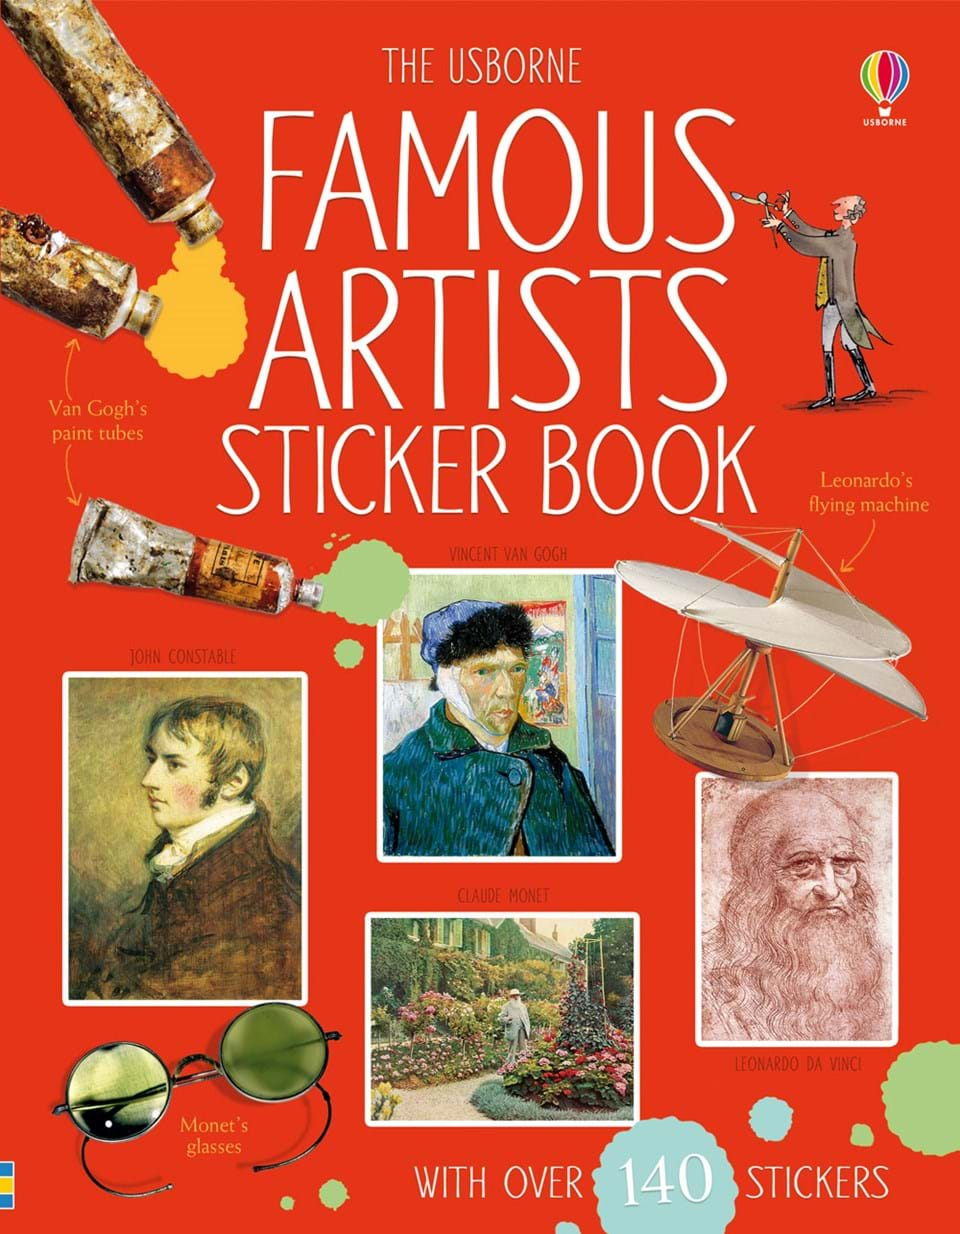 Famous artists sticker book at usborne books at home for Most famous house songs